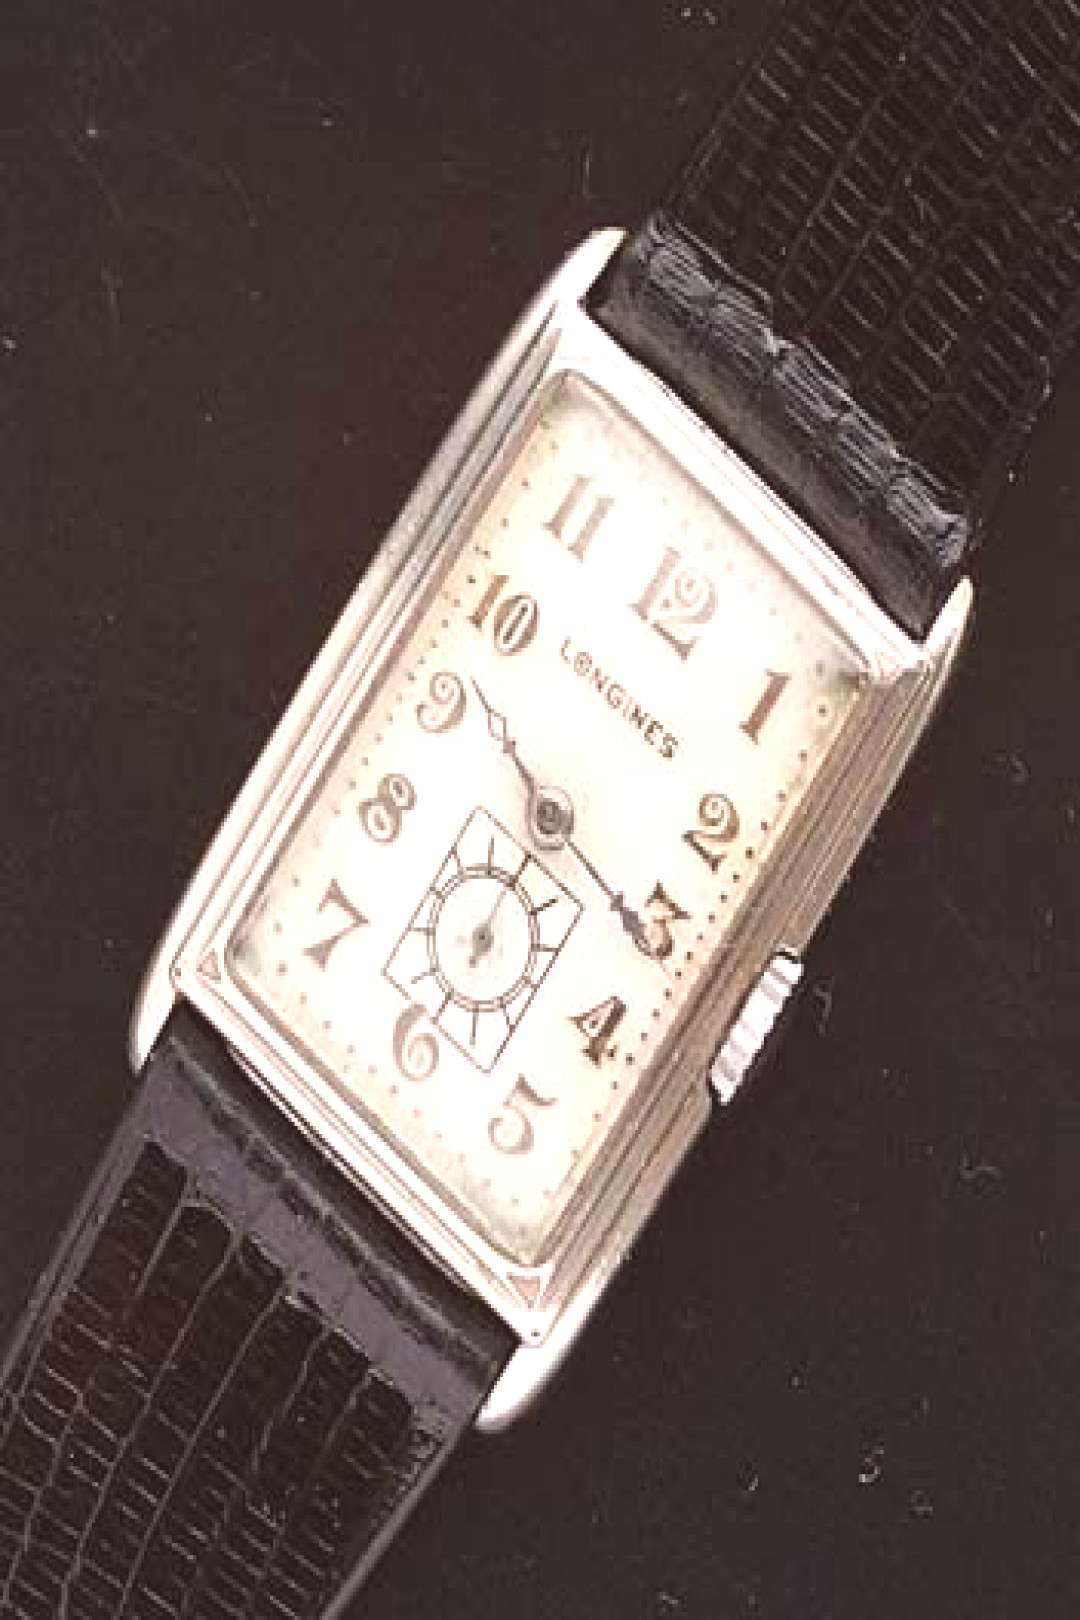 Vintage Longines rectangular doctors watch circa 1929 - Used and Vintage Watches for Sale -  Vintag